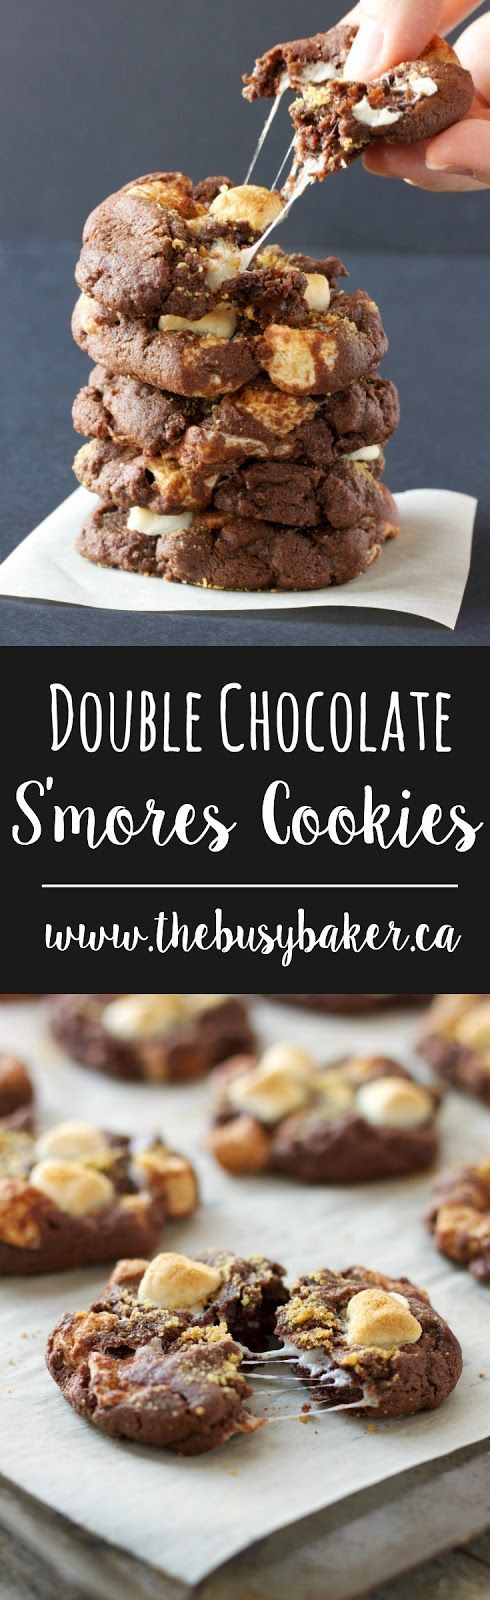 Double Chocolate S'mores Cookies from thebusybaker.ca make the perfect cookies for your summer holidays!